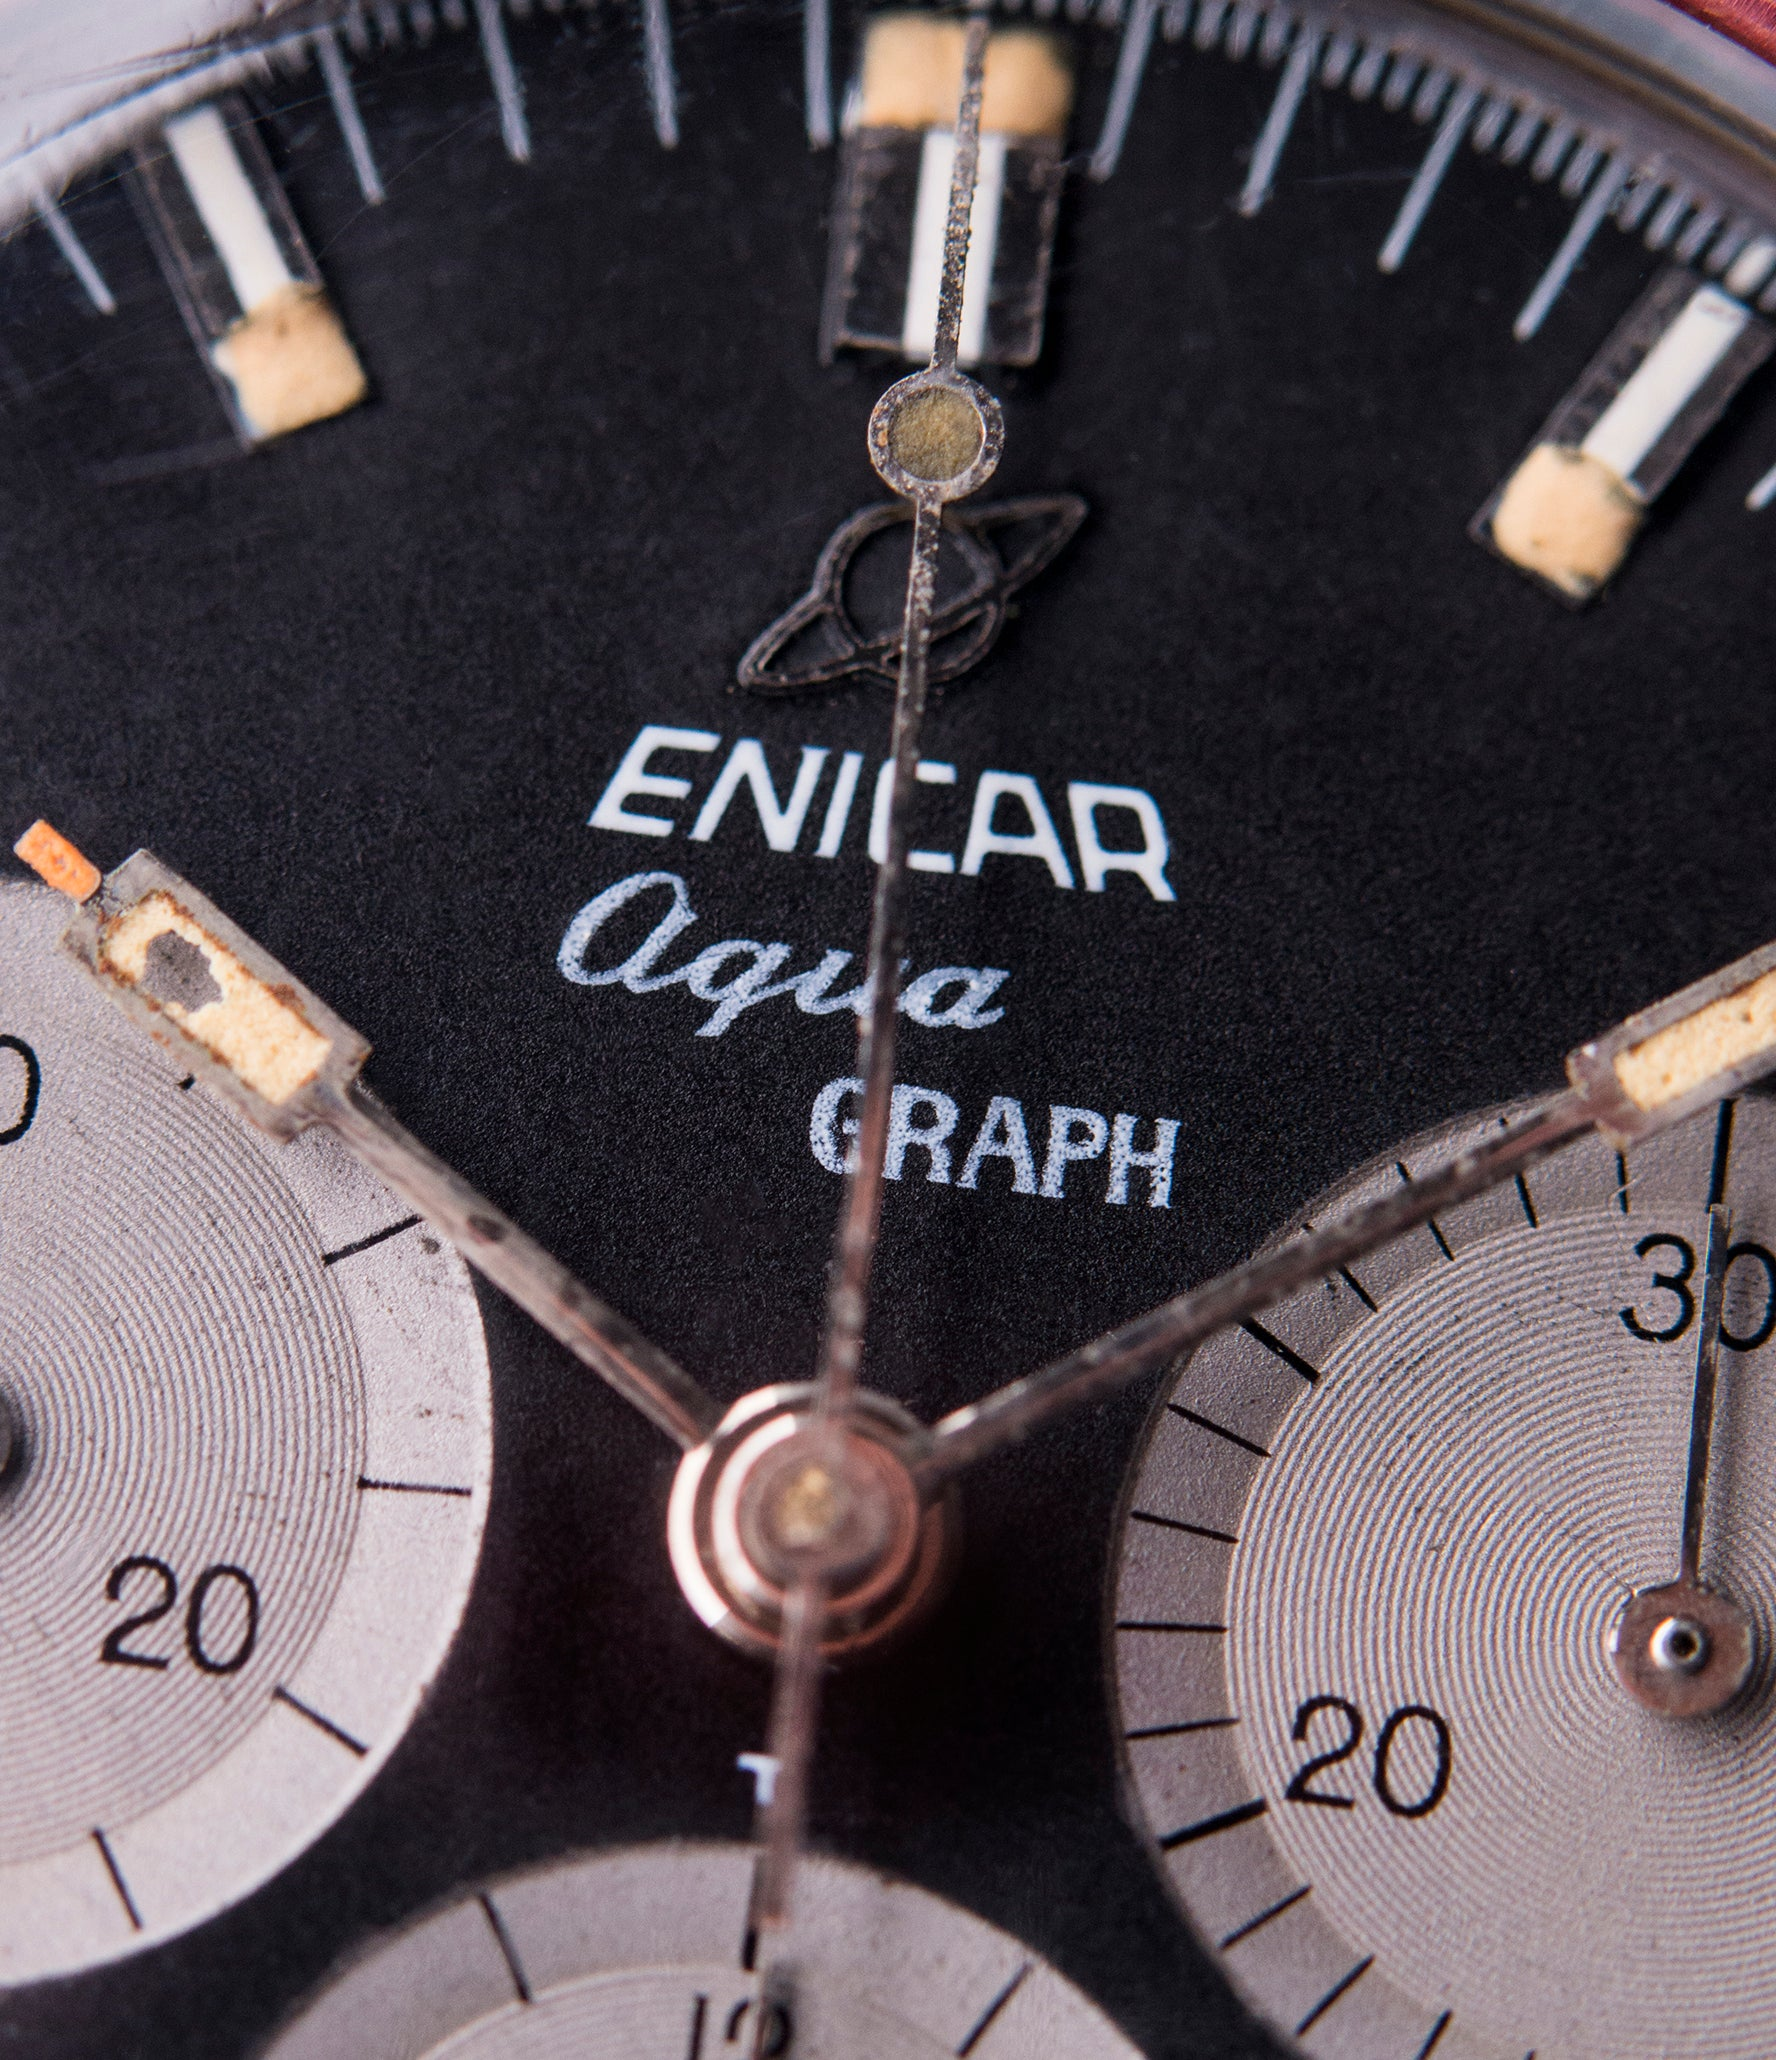 vintage Enicar Aqua Graph 072-02-02 black dial steel vintage chronograph watch for sale online at A Collected Man London UK specialist of rare watches